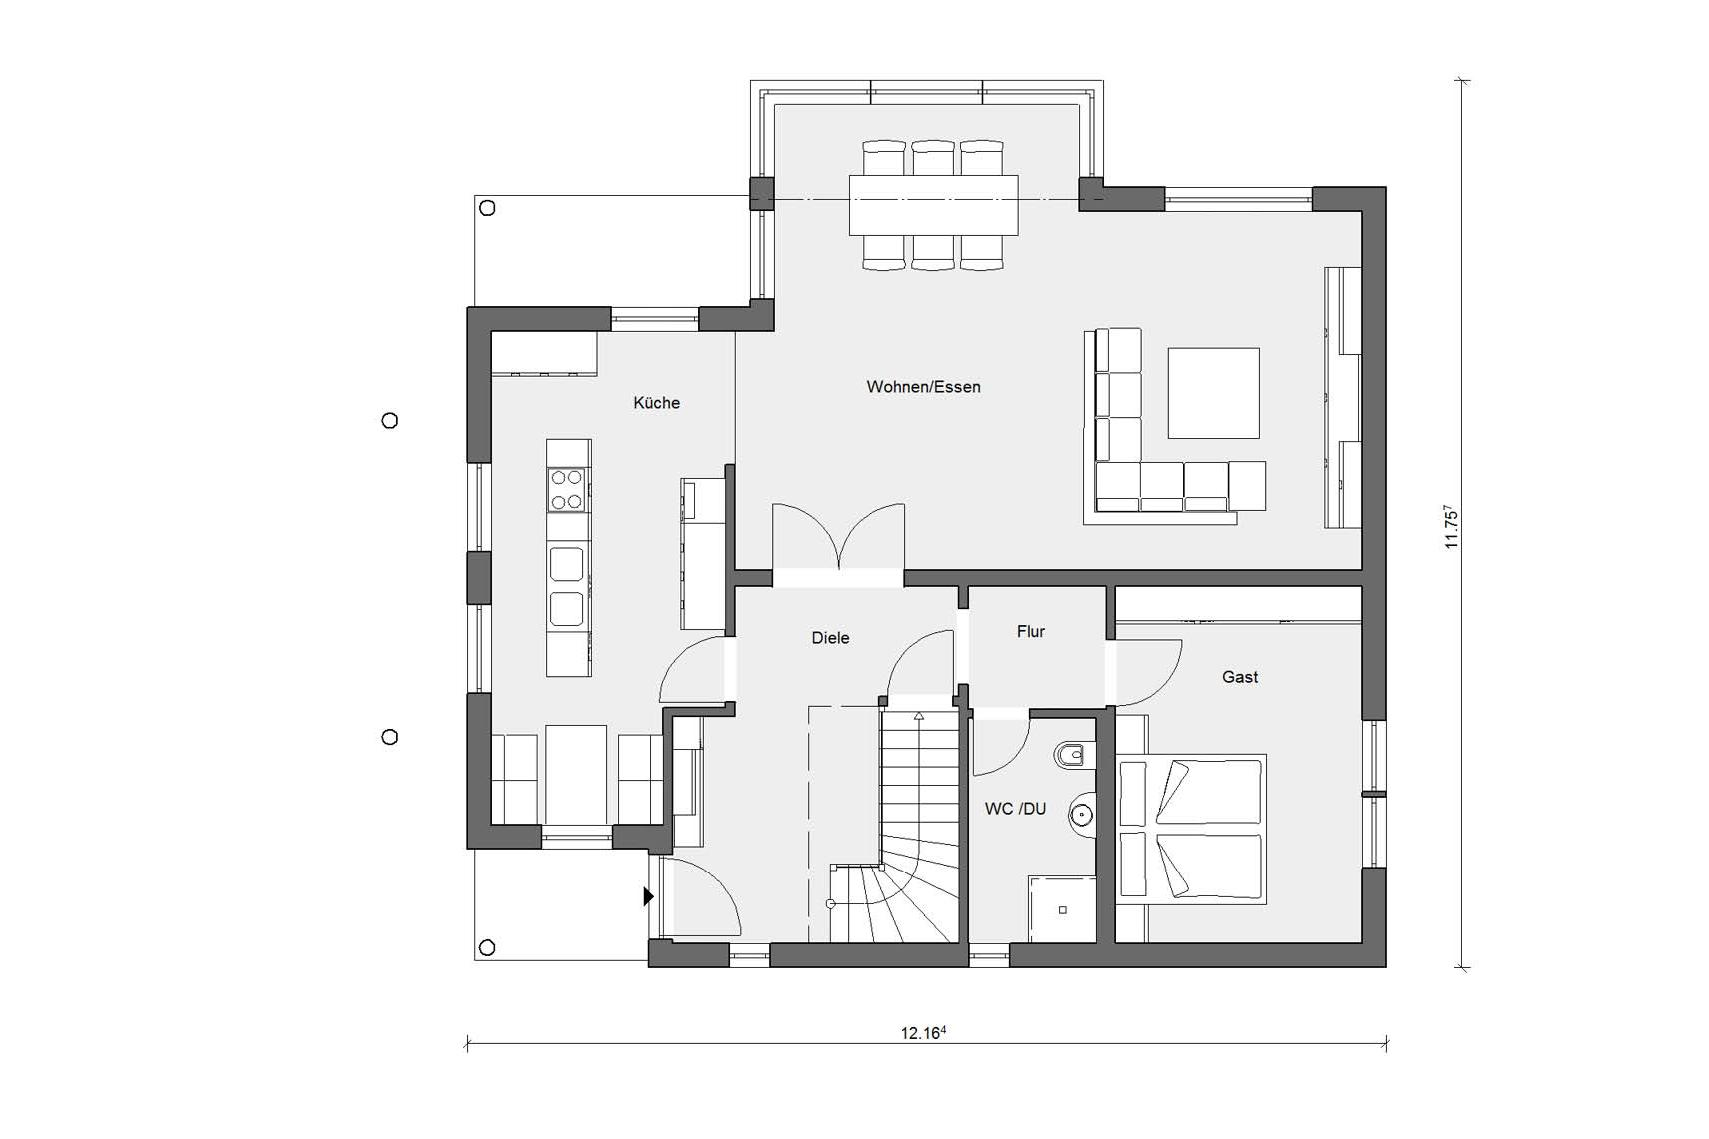 Ground floor plan E 15-205.1 House with conservatory